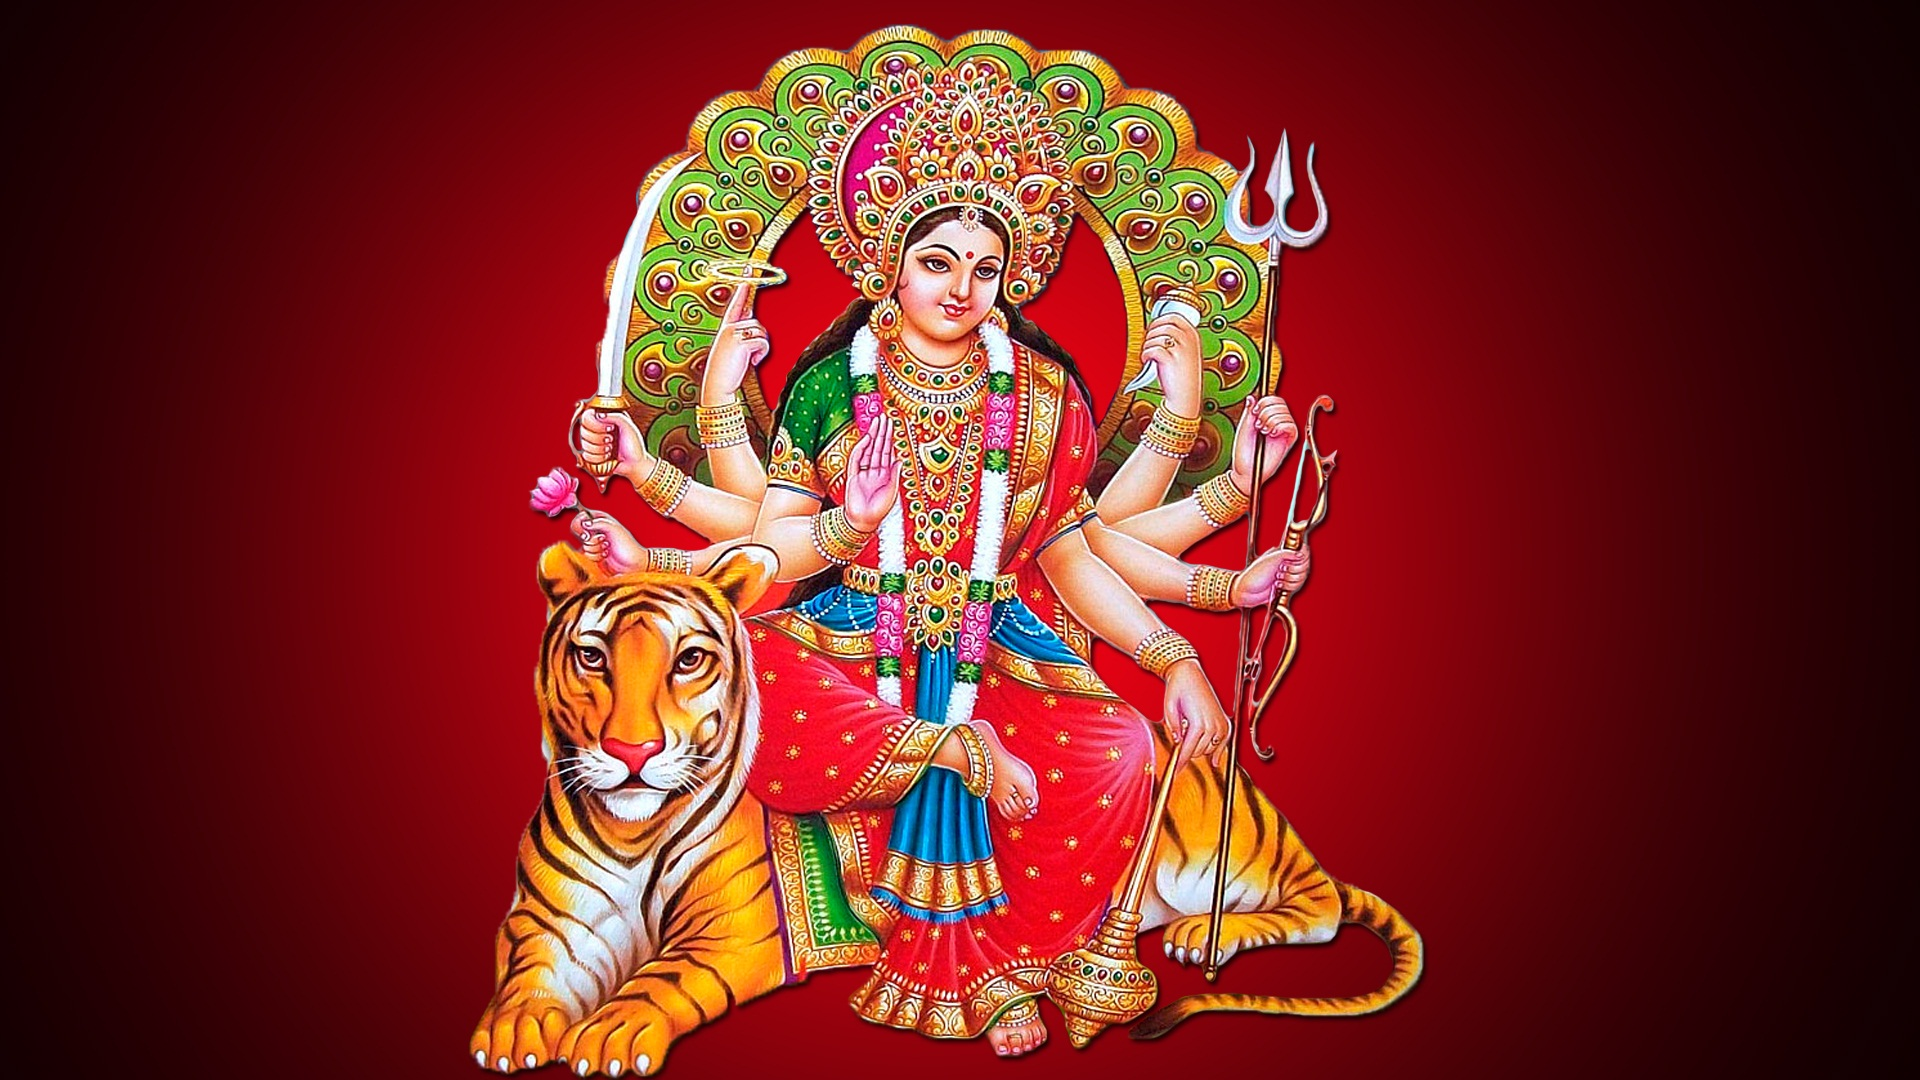 Durga maa photos hd